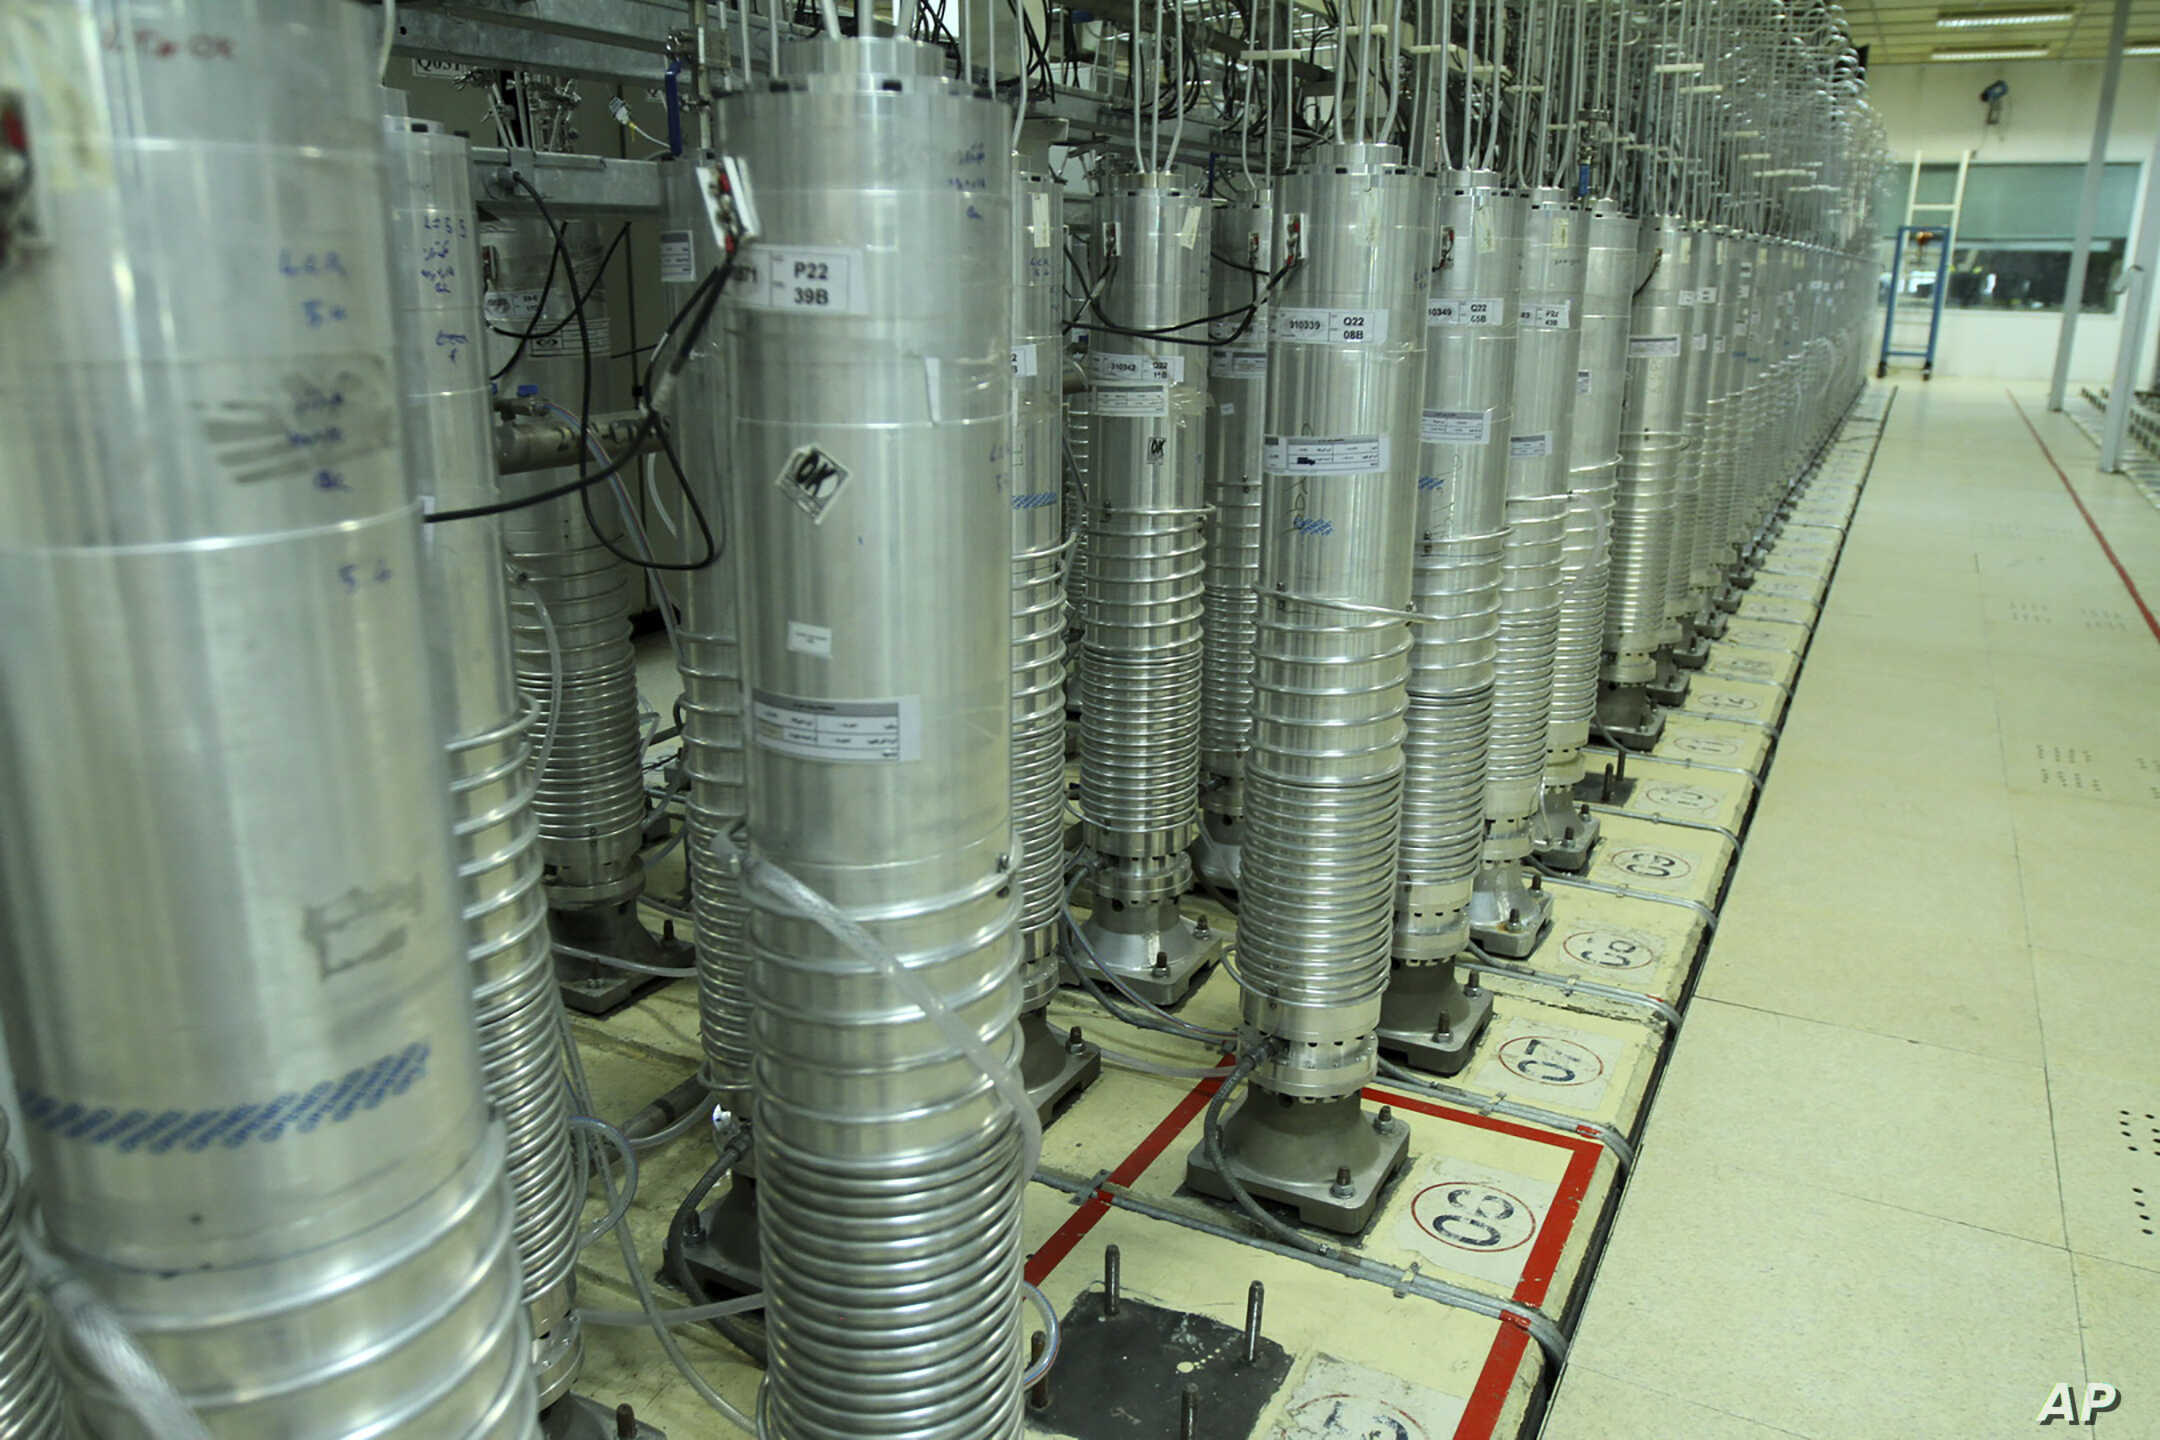 New generation of centrifuges at Iran's Natanz nuclear enrichment plant